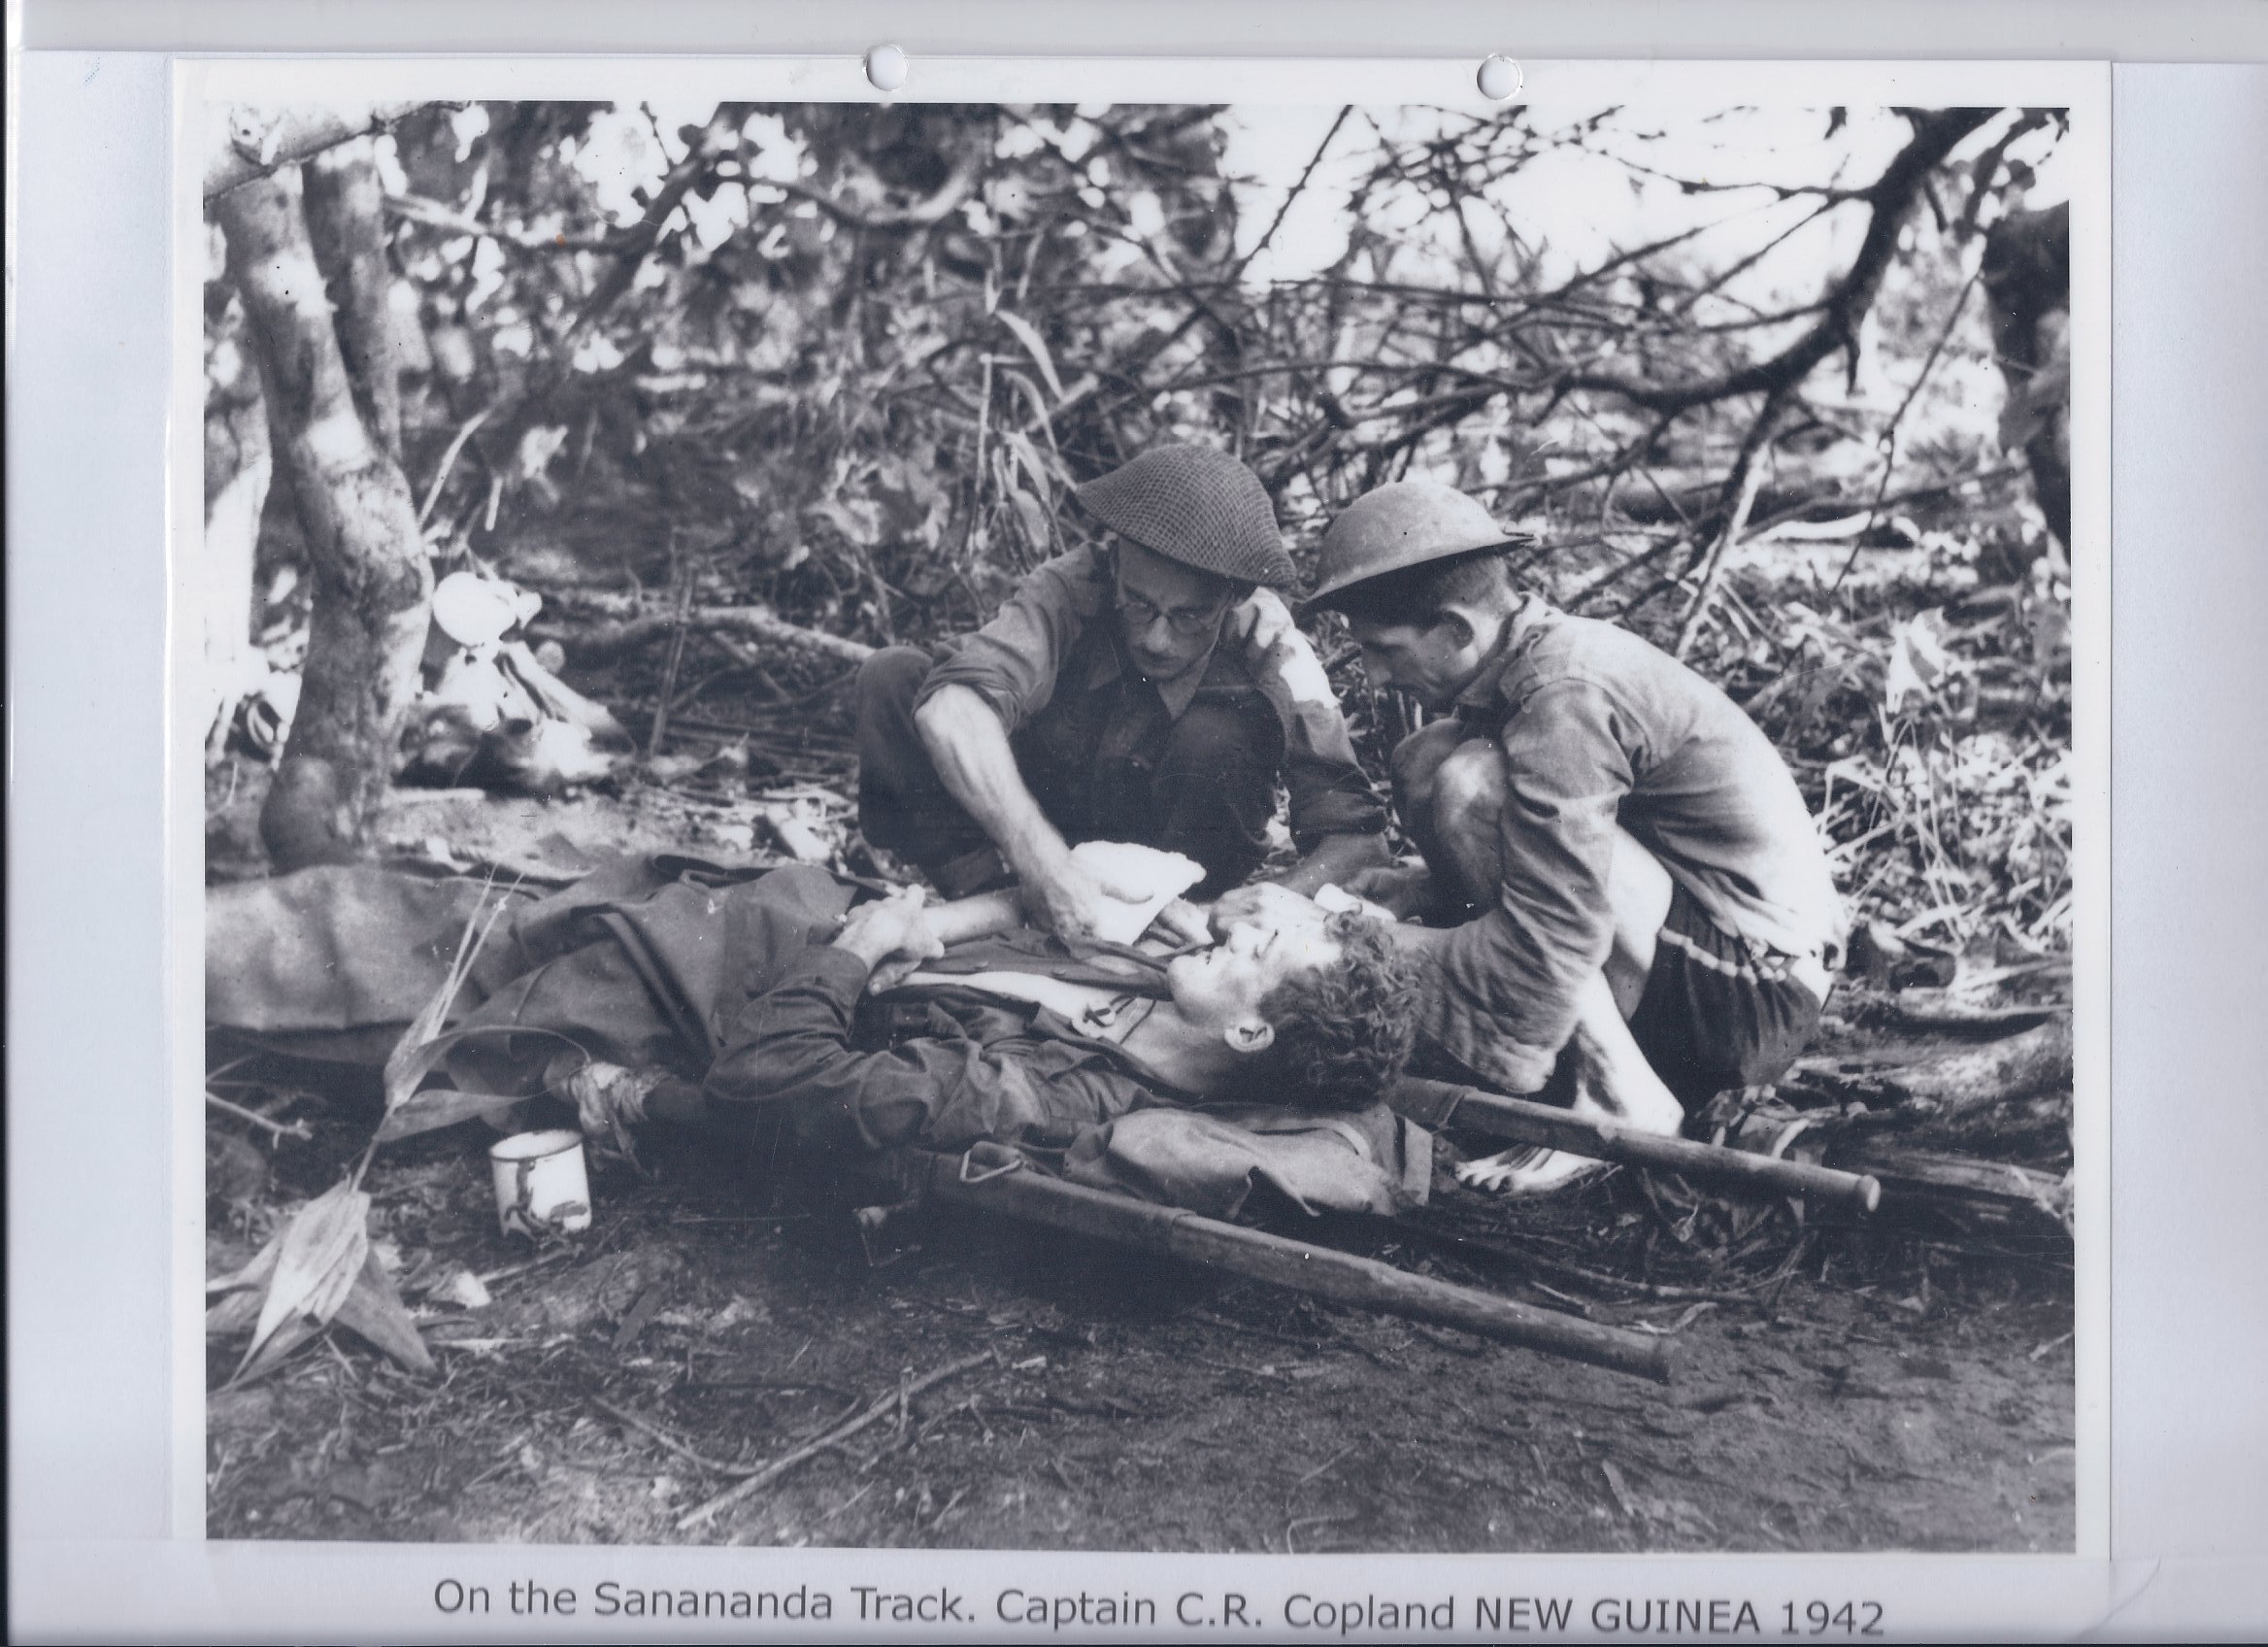 On the Sanananda Track. Captain C.R. Copland NEW GUINEA 1942